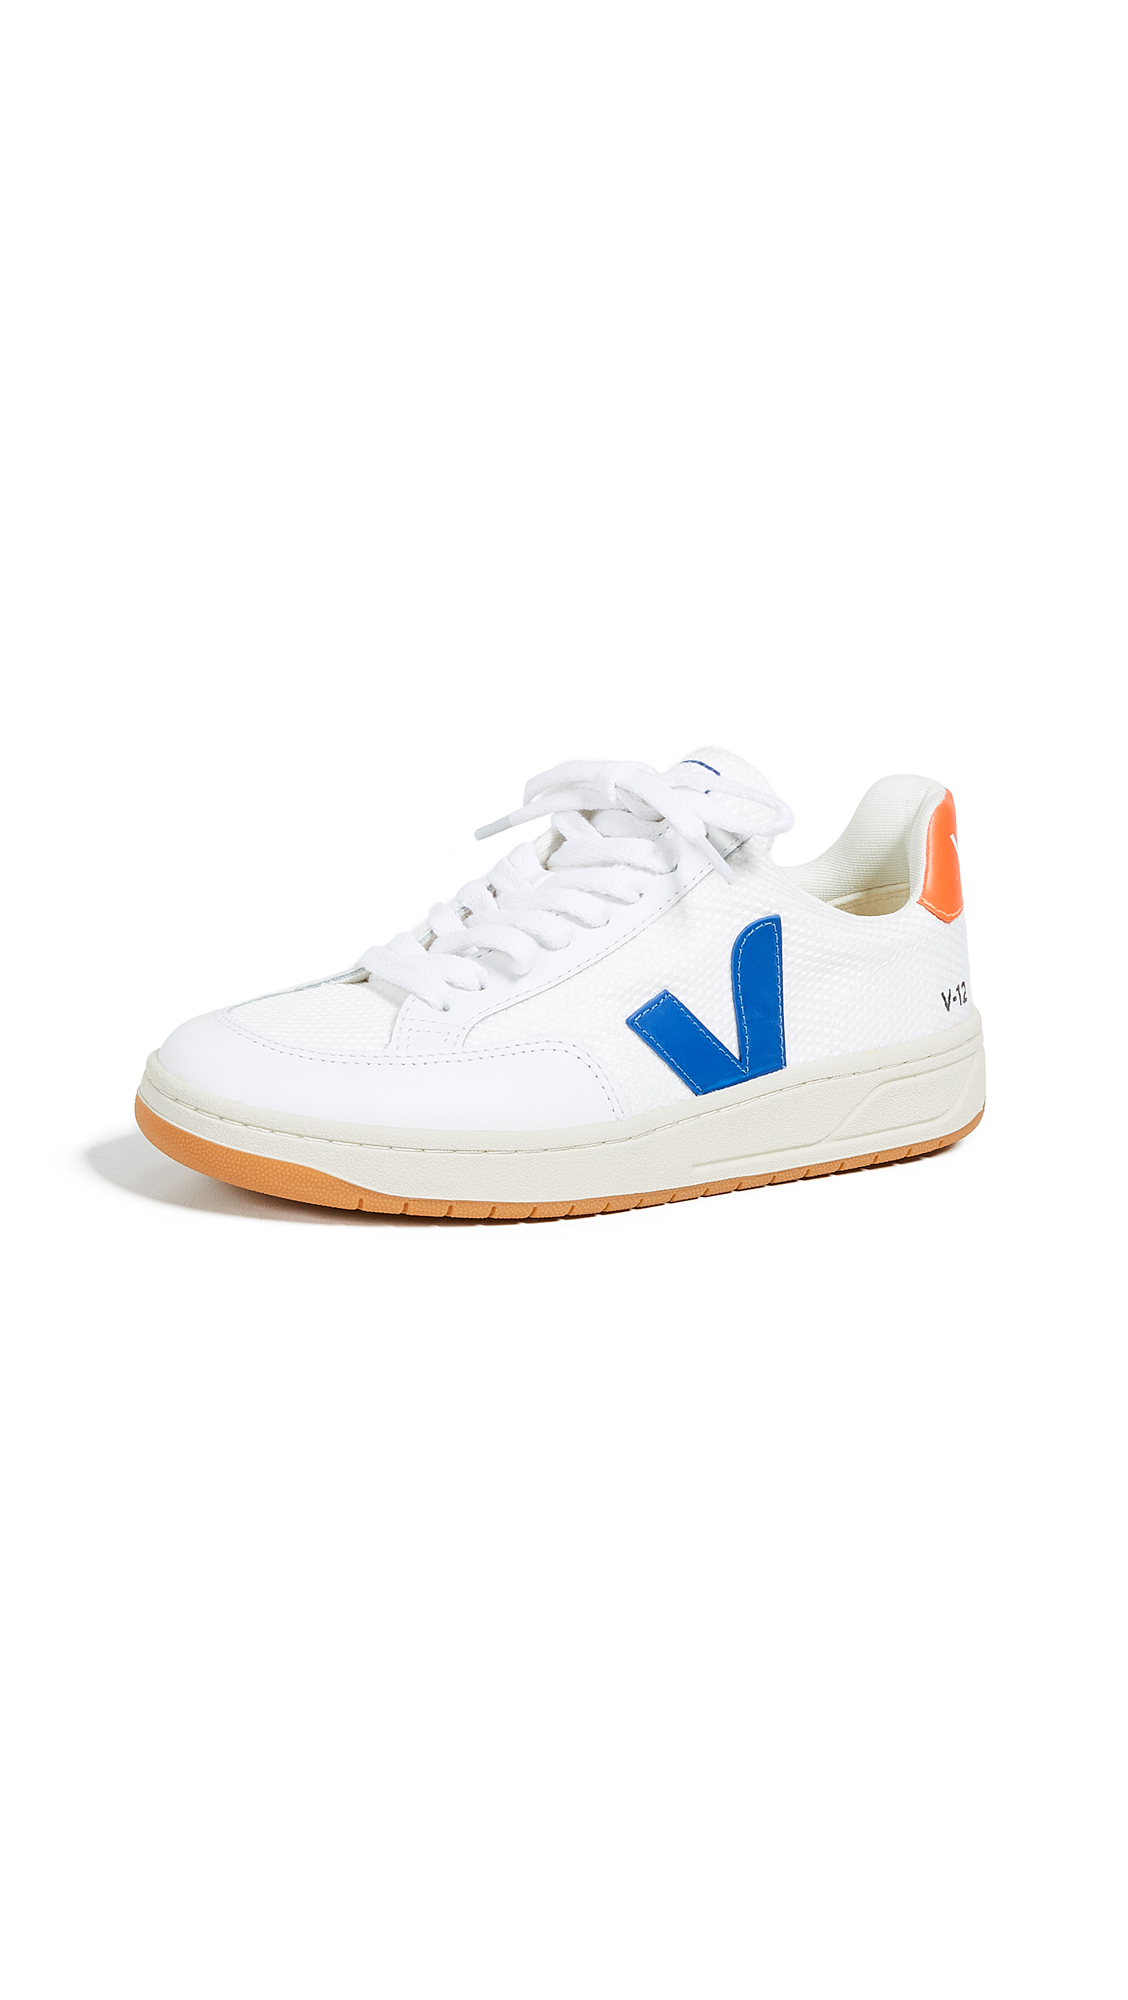 Veja V-12 Lace Up Sneakers - White/Indigo/Orange/Fluo